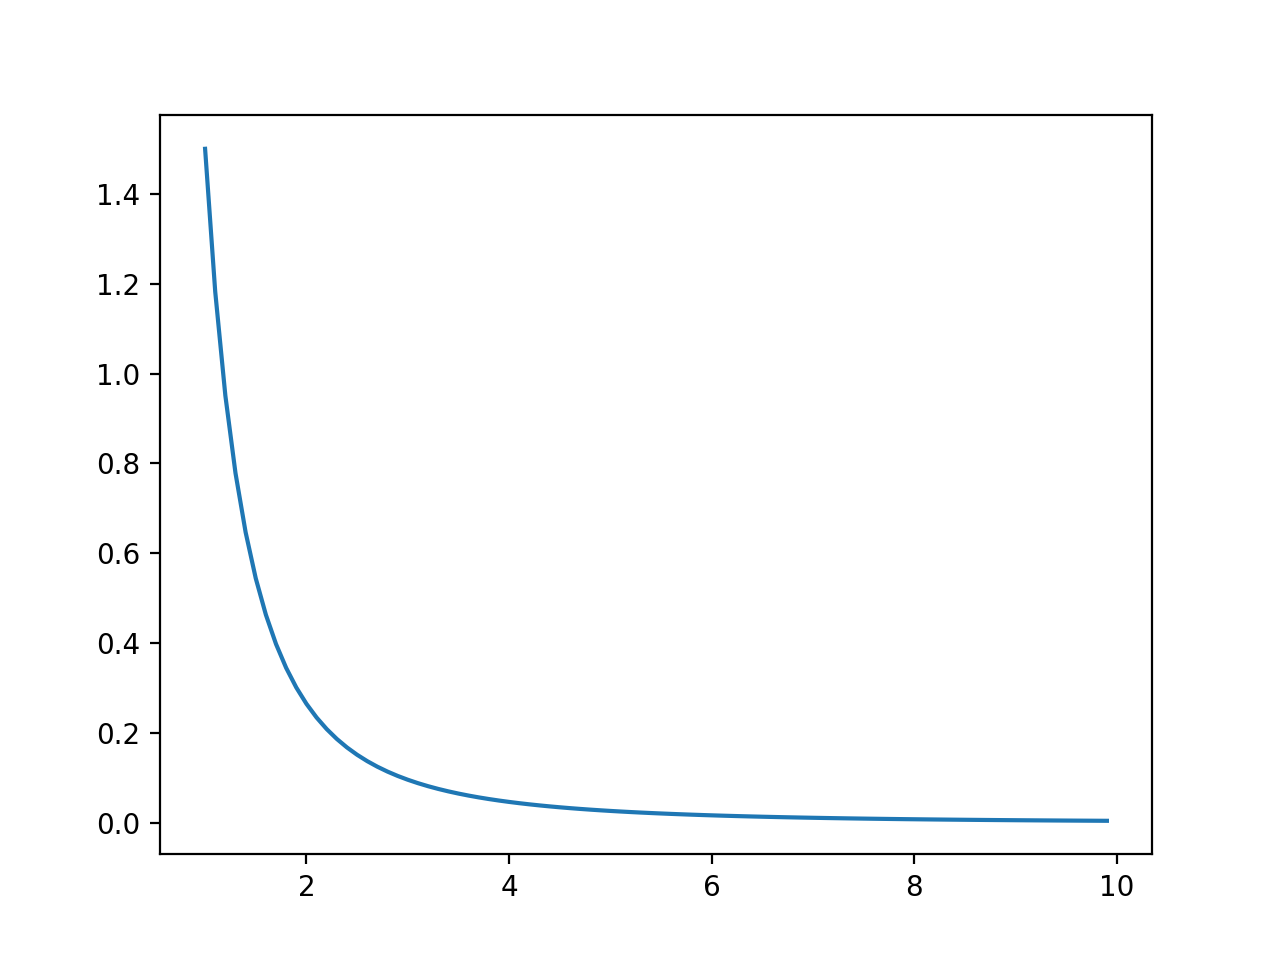 Line Plot of Events vs. Probability or the Probability Density Function for the Pareto Distribution